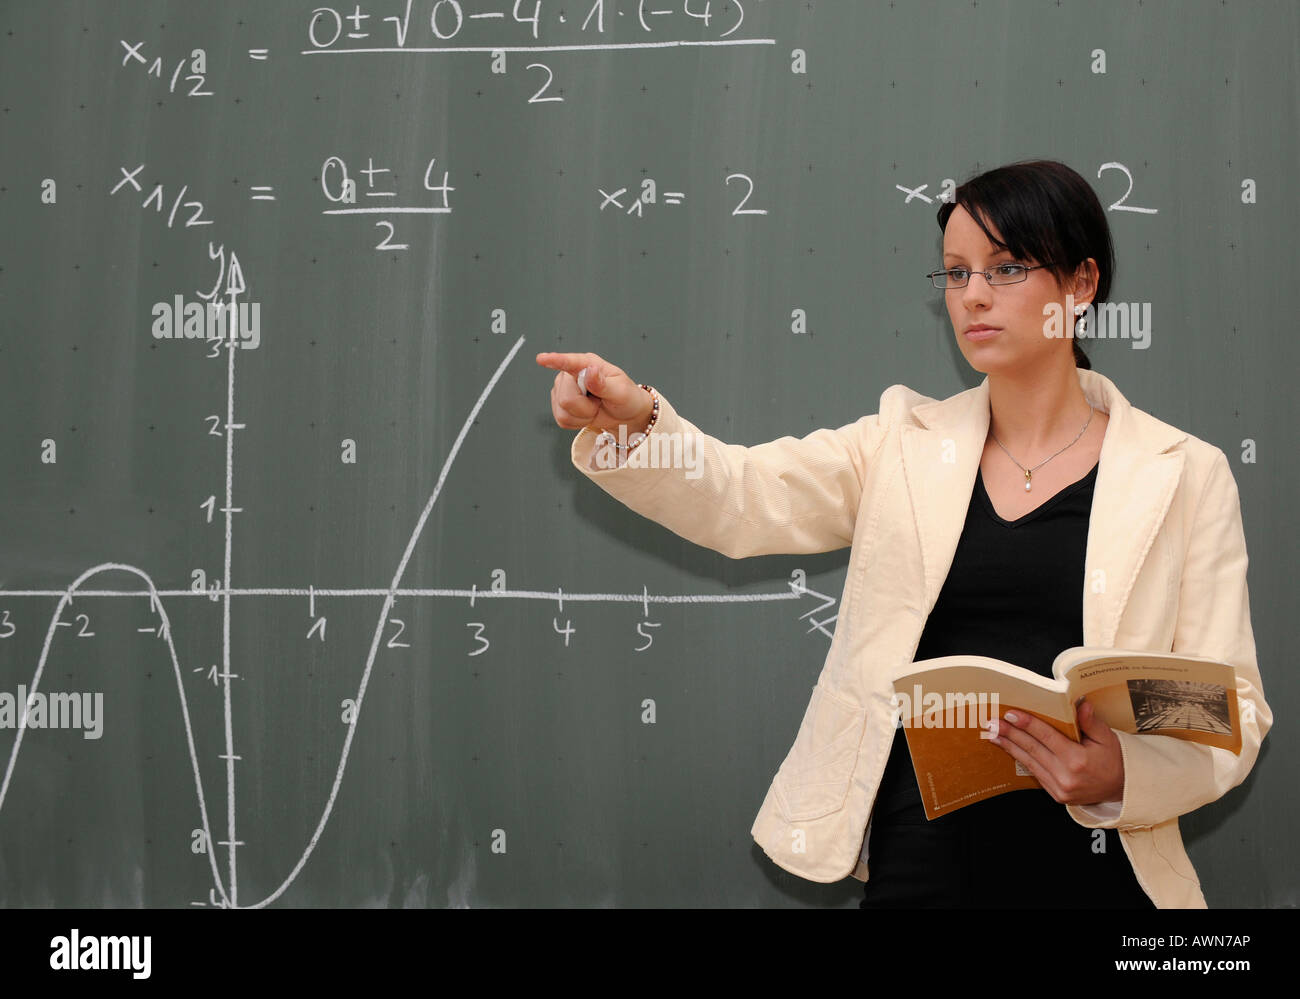 Teaching Maths Young Female Teacher Teaching Maths Stock Photo 16620141 Alamy